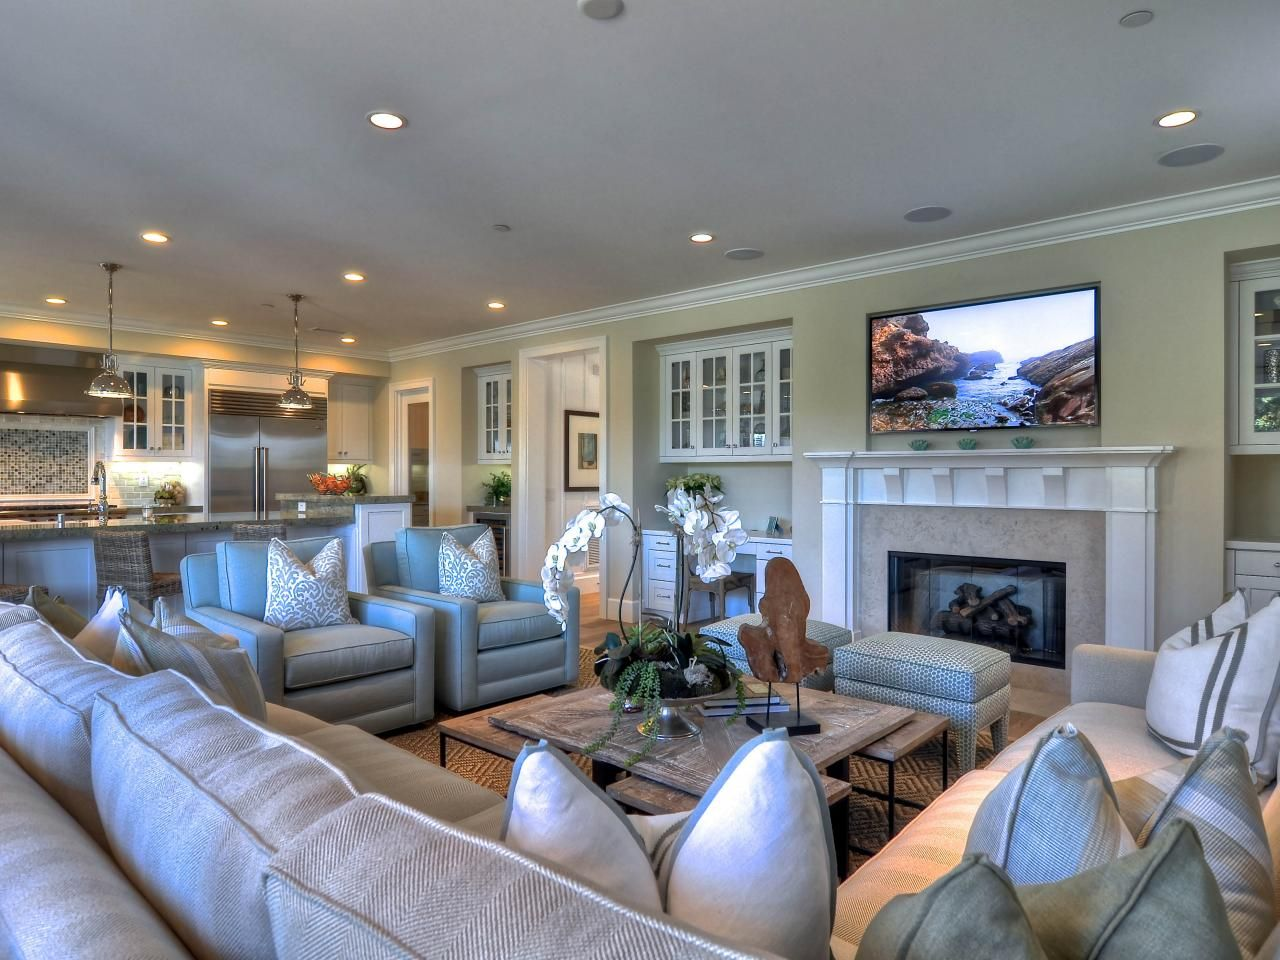 Coastal decor is found in the details in this spacious for Tv room sofa